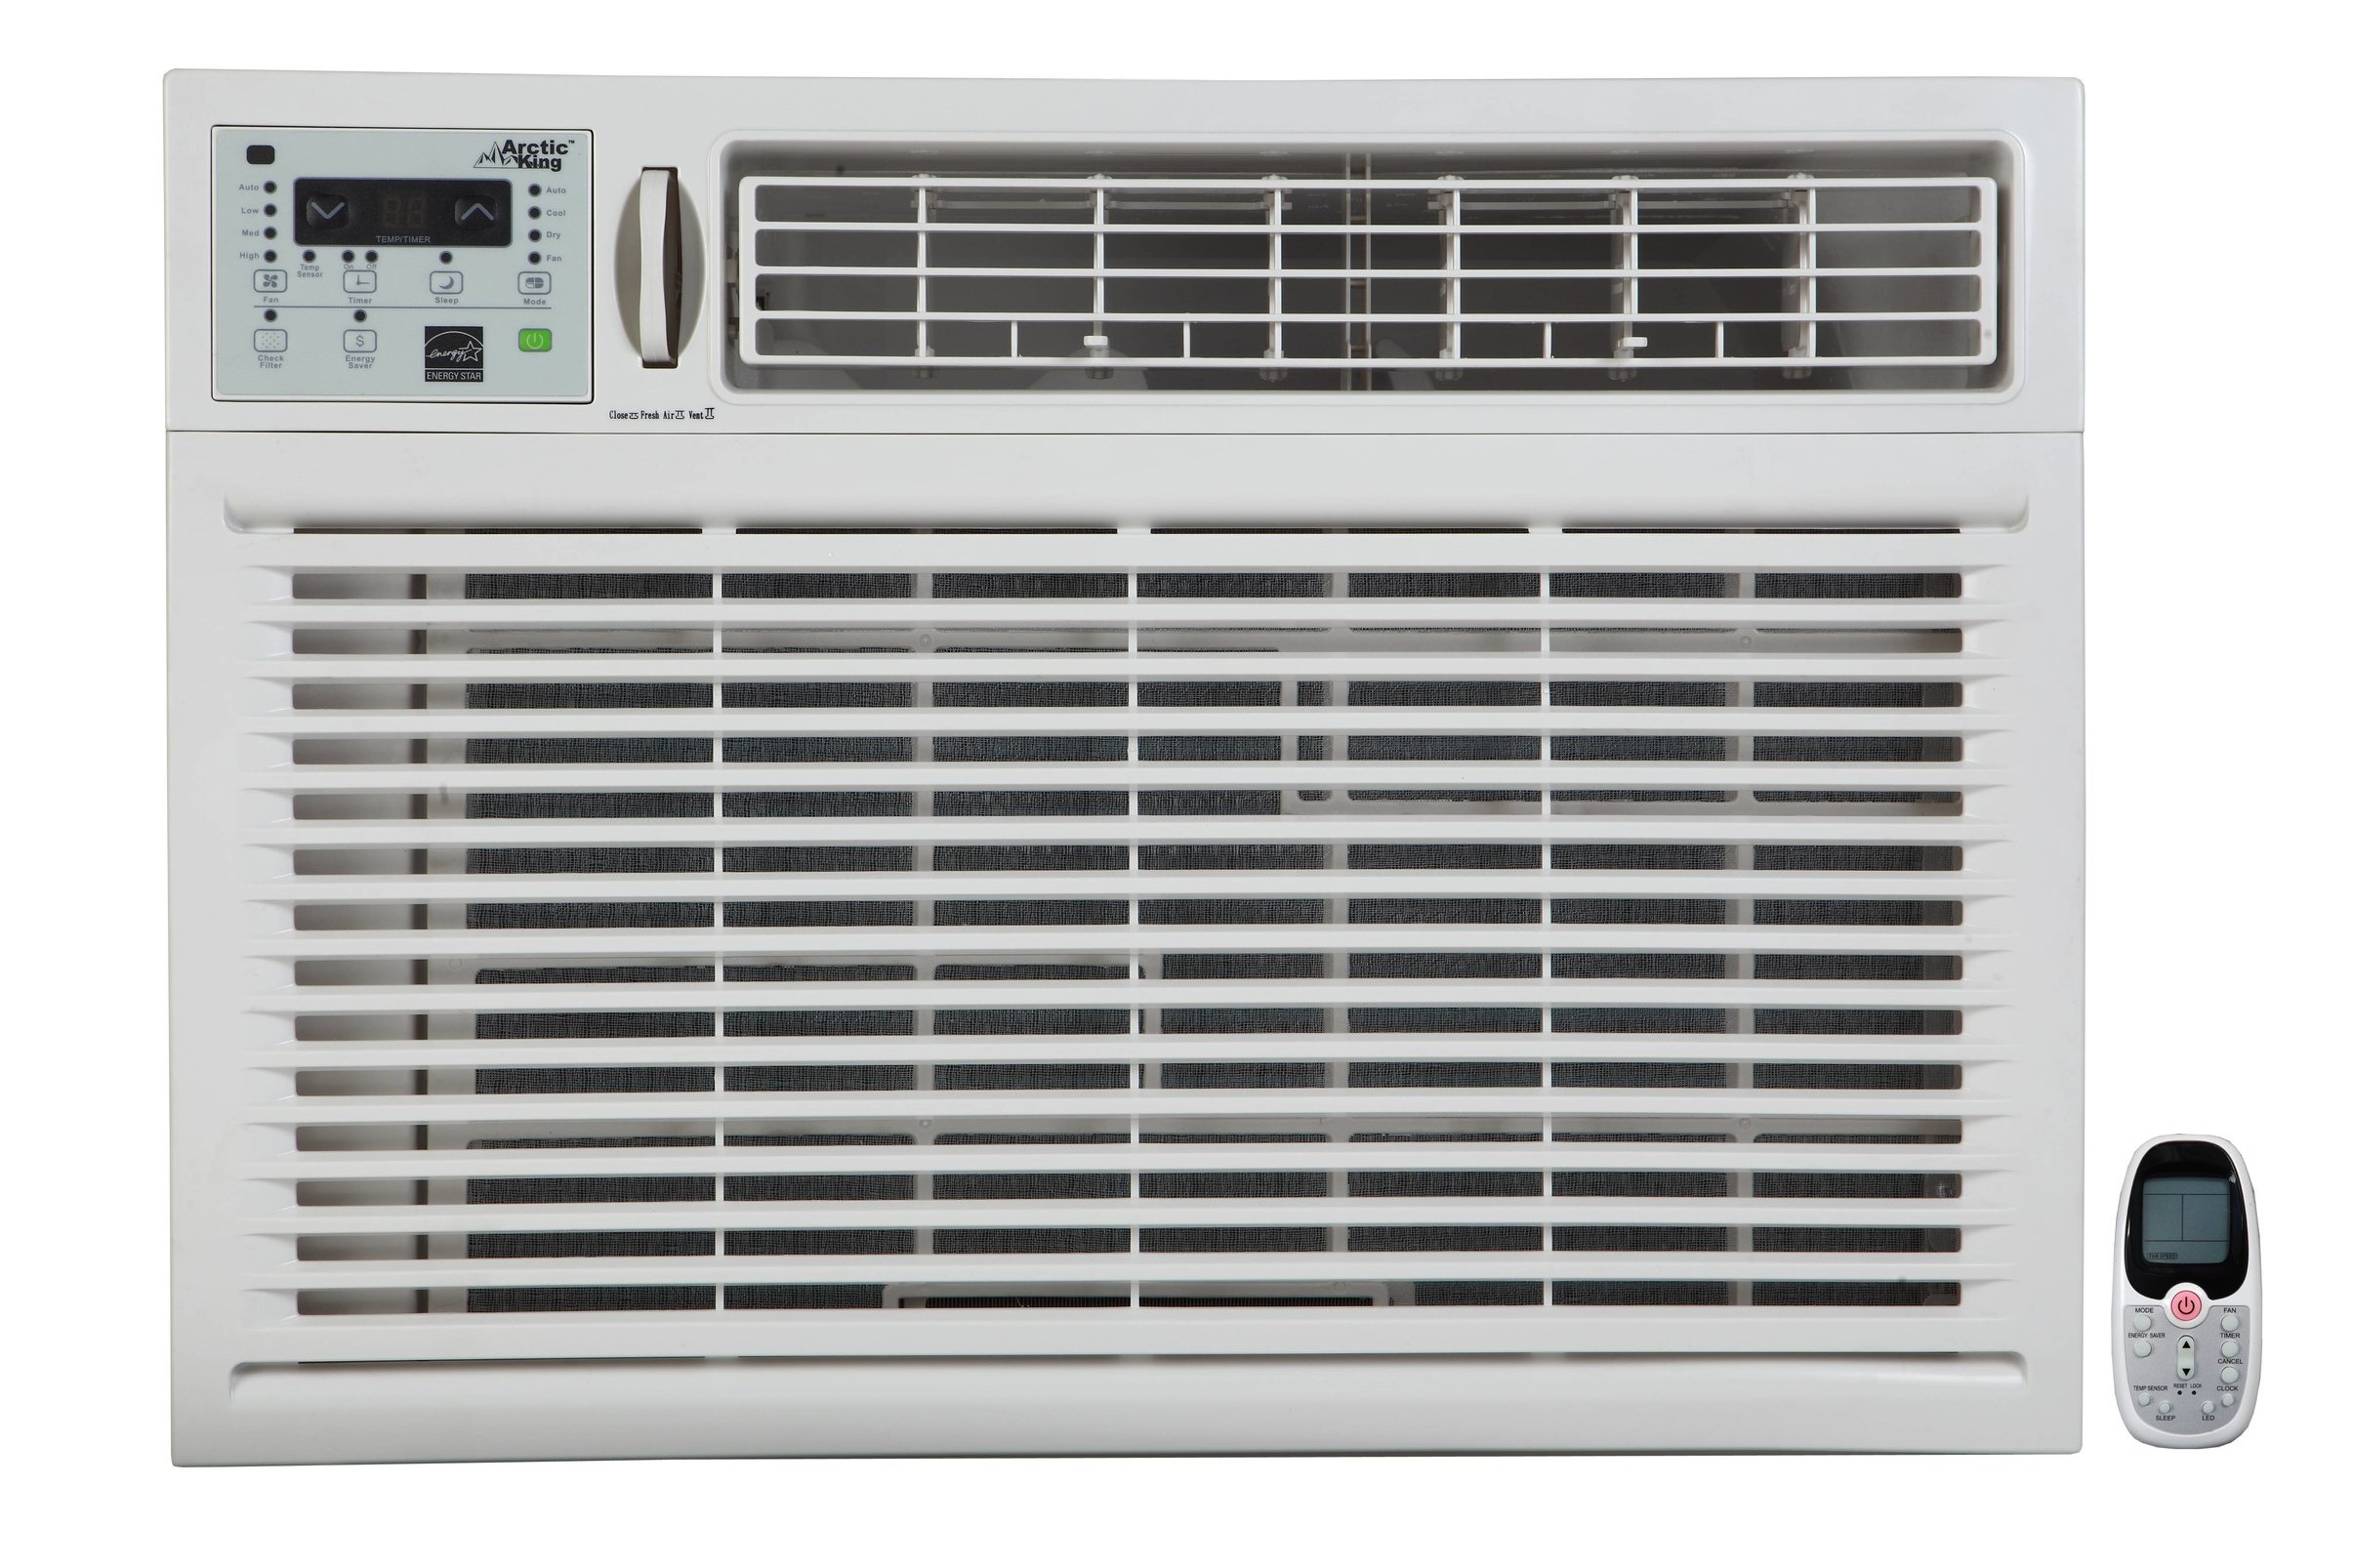 "Arctic King 25,000 BTU Window Air Conditioner 220 Volts Open Box Like New - Model: WWK25CR82Price: $ 350.00Dimension: 26.5"" W x 18.6"" H x 26.5"" DRoom Size: 850 - 1200 Sq. Ft.3 Months Limited WarrantyAvailability: In Stock"